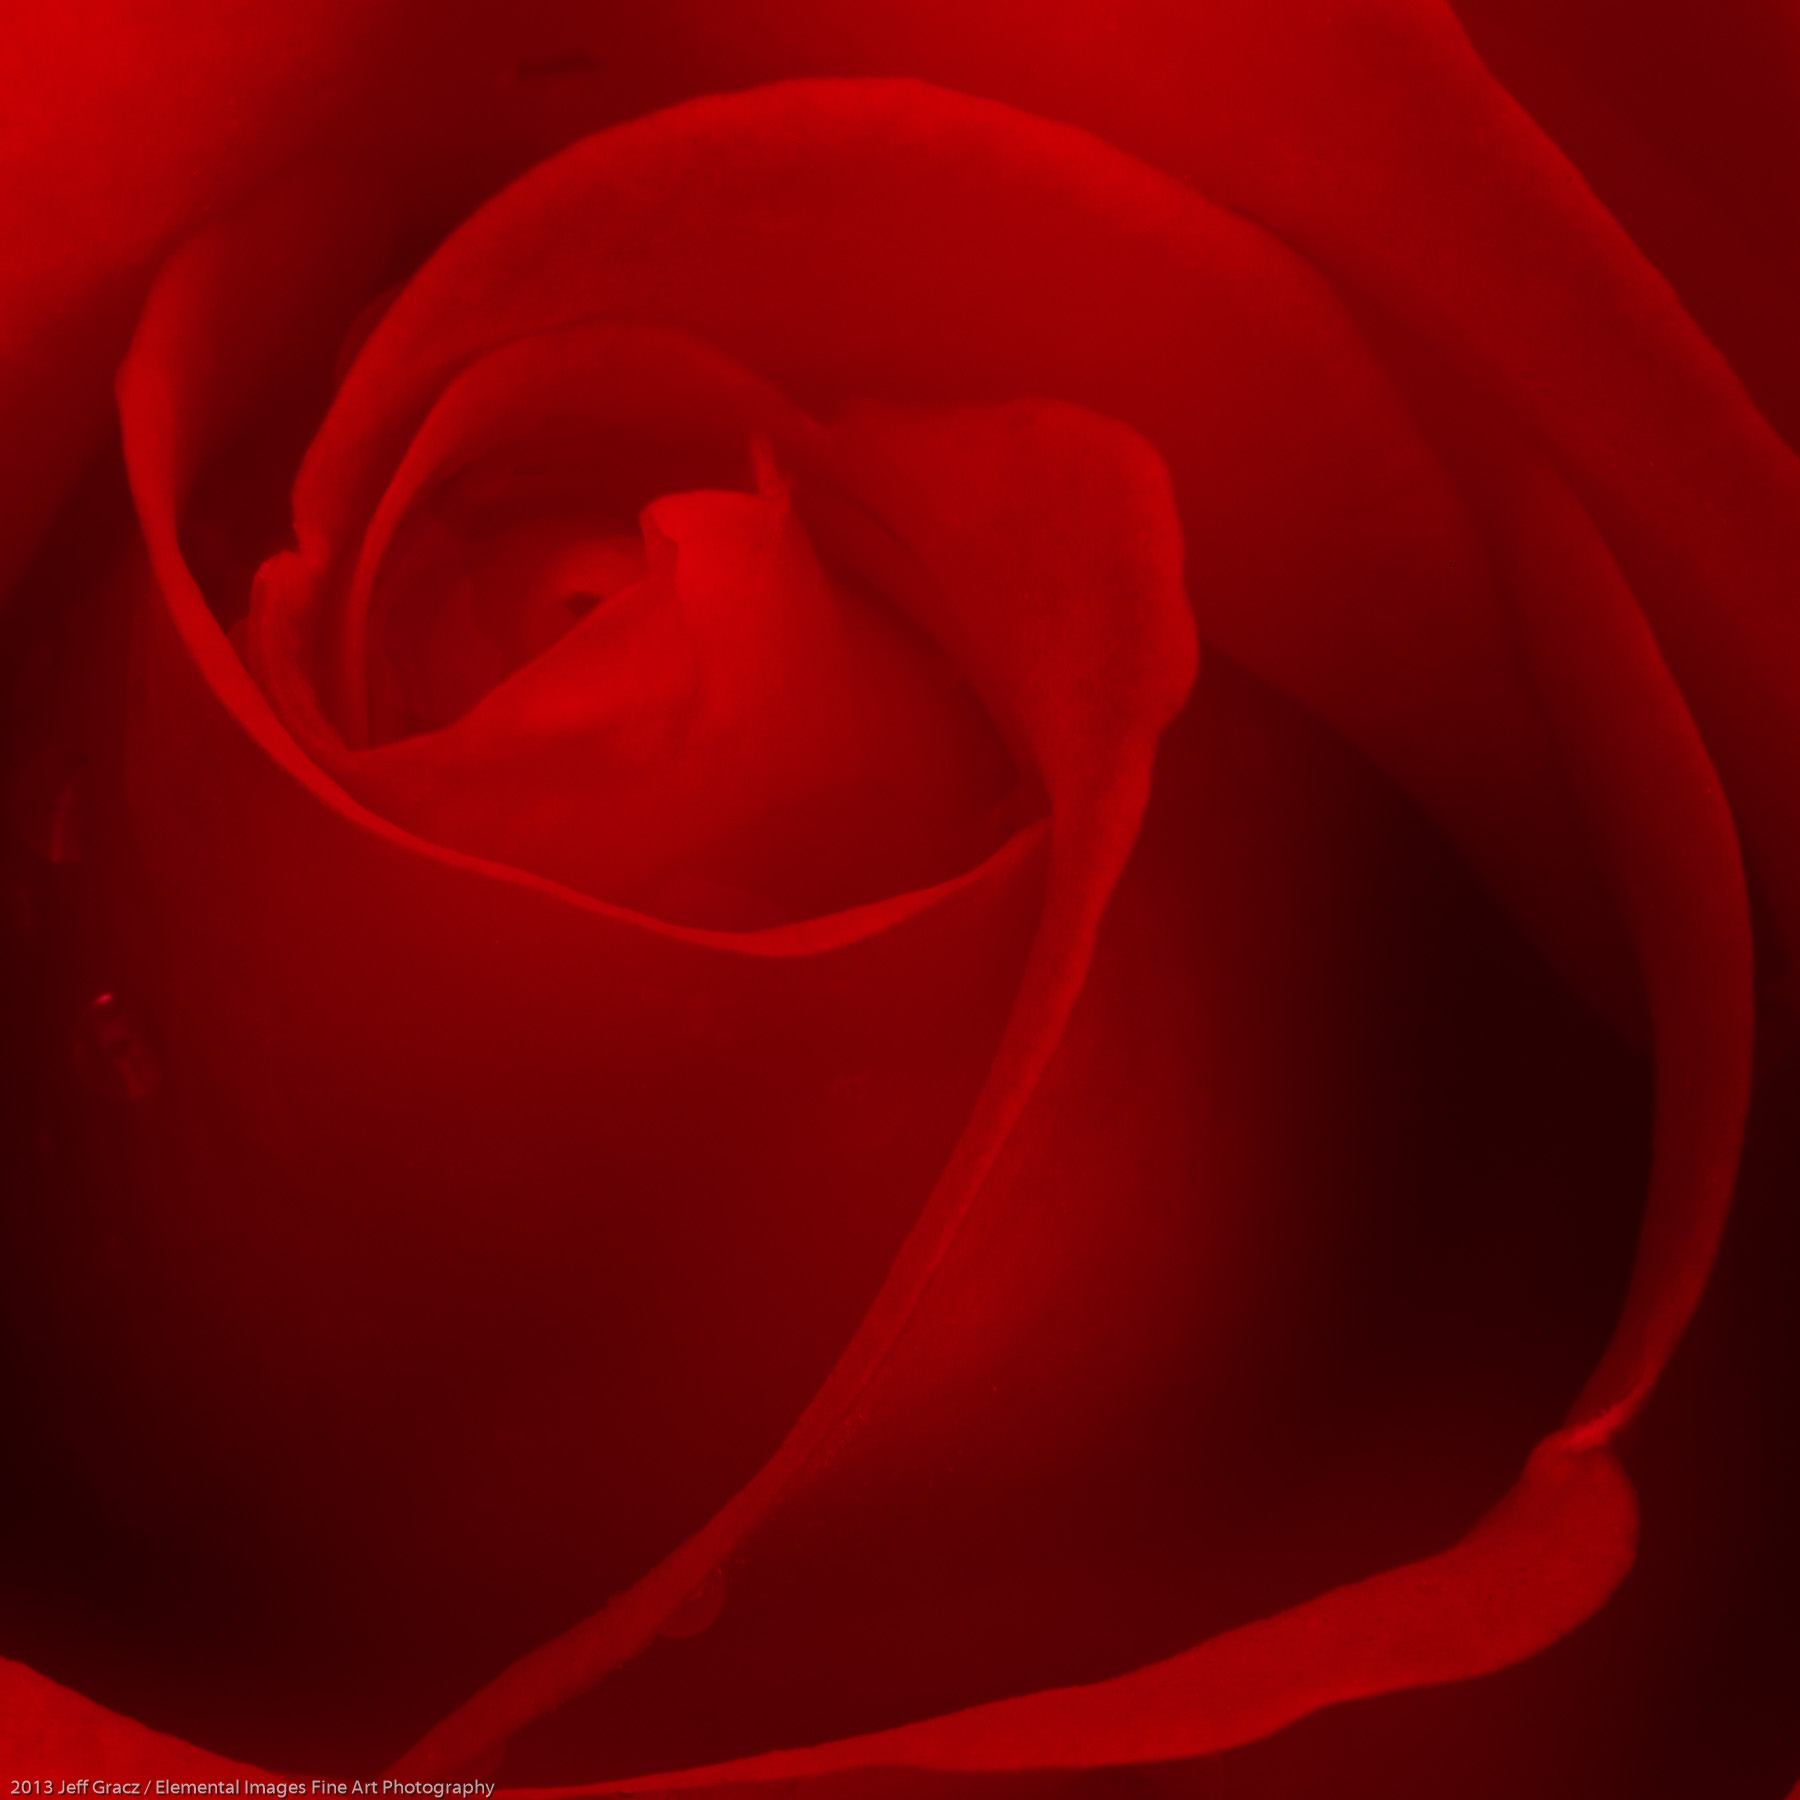 Roses XLVI   Portland   OR   USA - © 2013 Jeff Gracz / Elemental Images Fine Art Photography - All Rights Reserved Worldwide